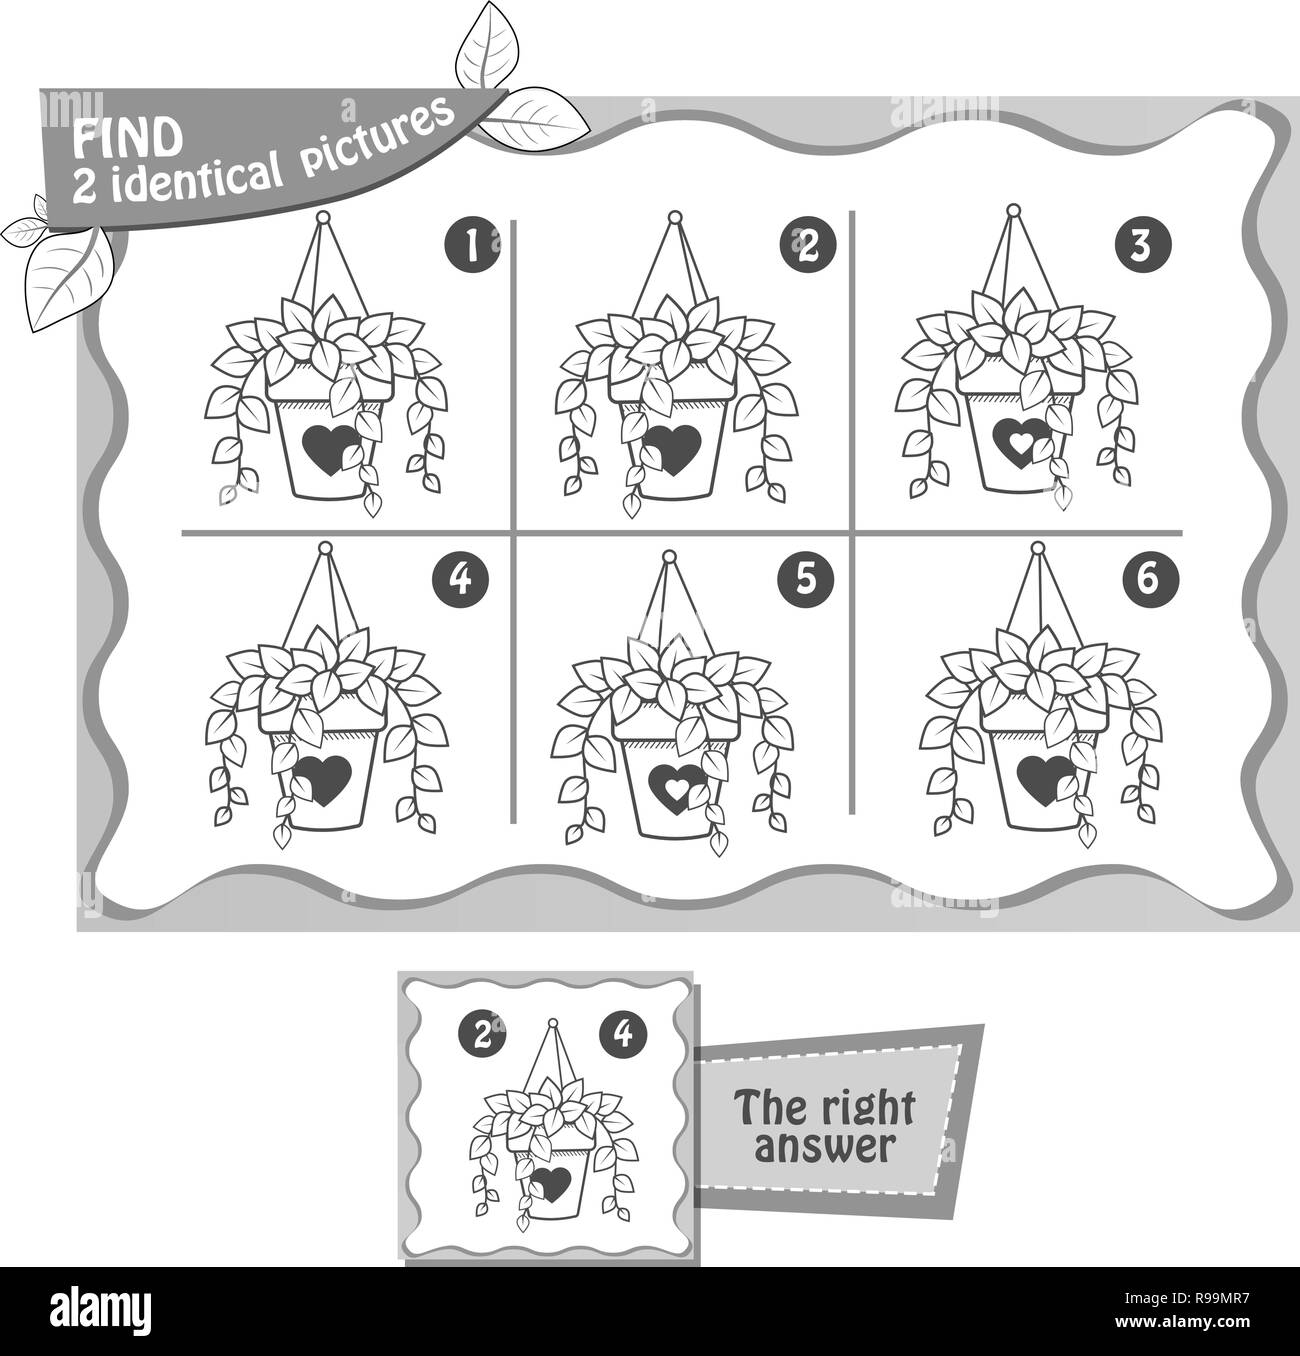 Task Game Fnd 2 Identical Pictures Black And White Illustration